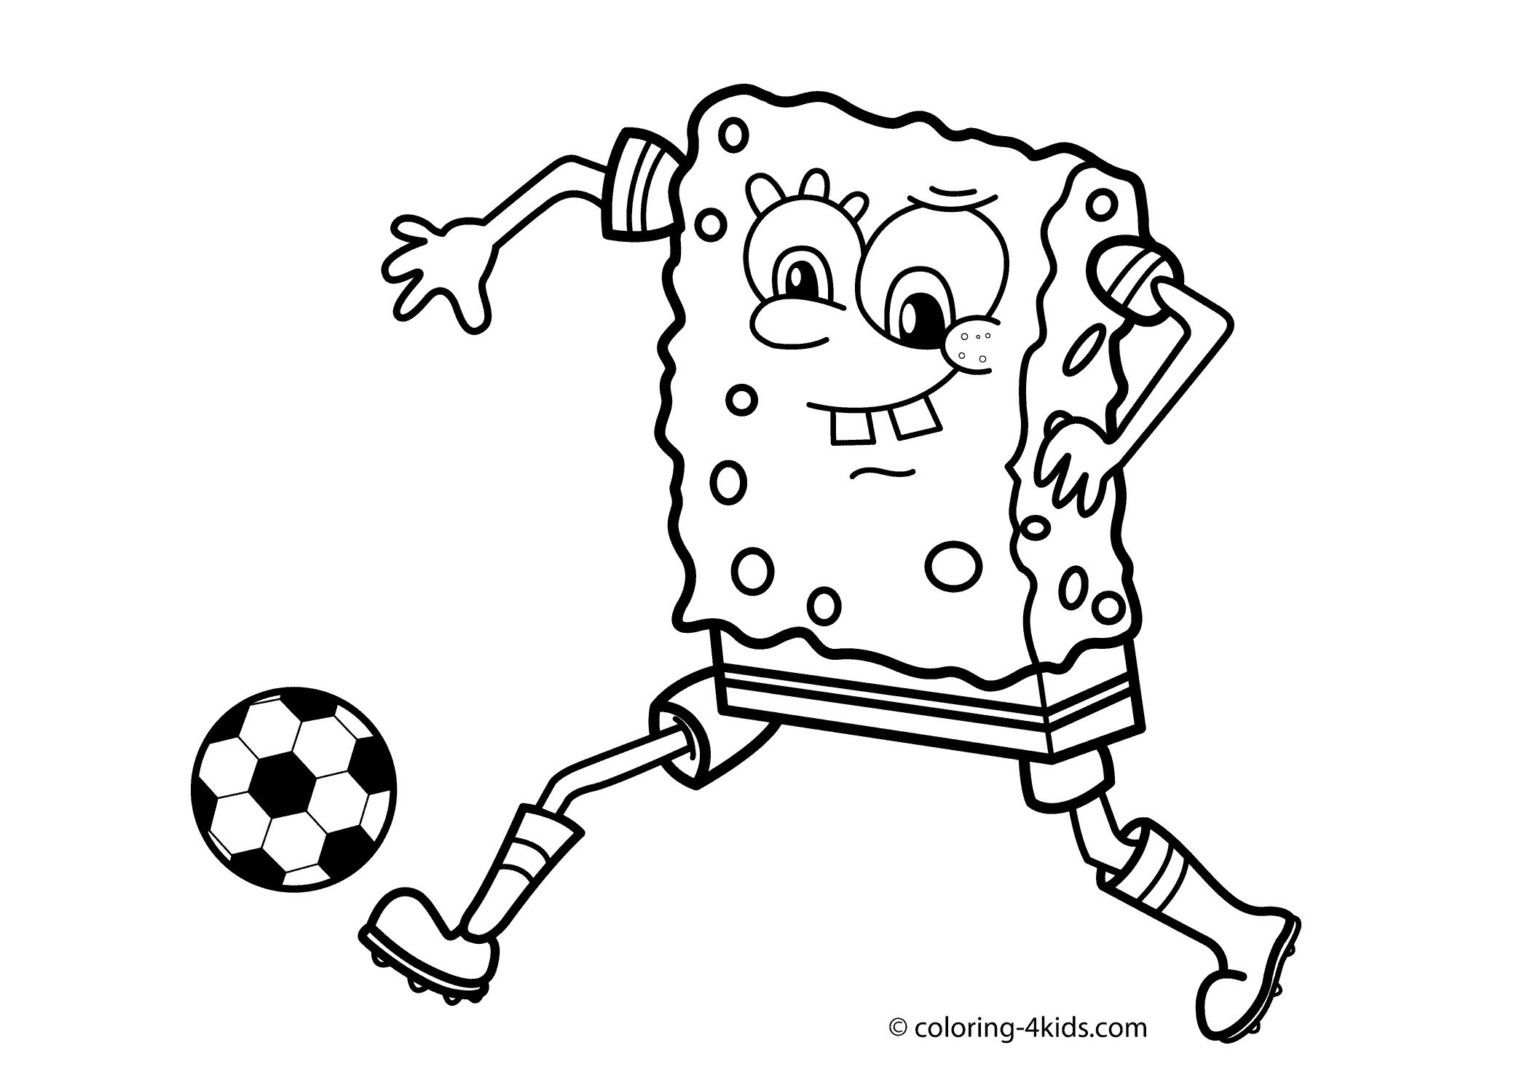 http://colorings.co/coloring-pages-for-boys-sports/ #Boys, #Coloring ...